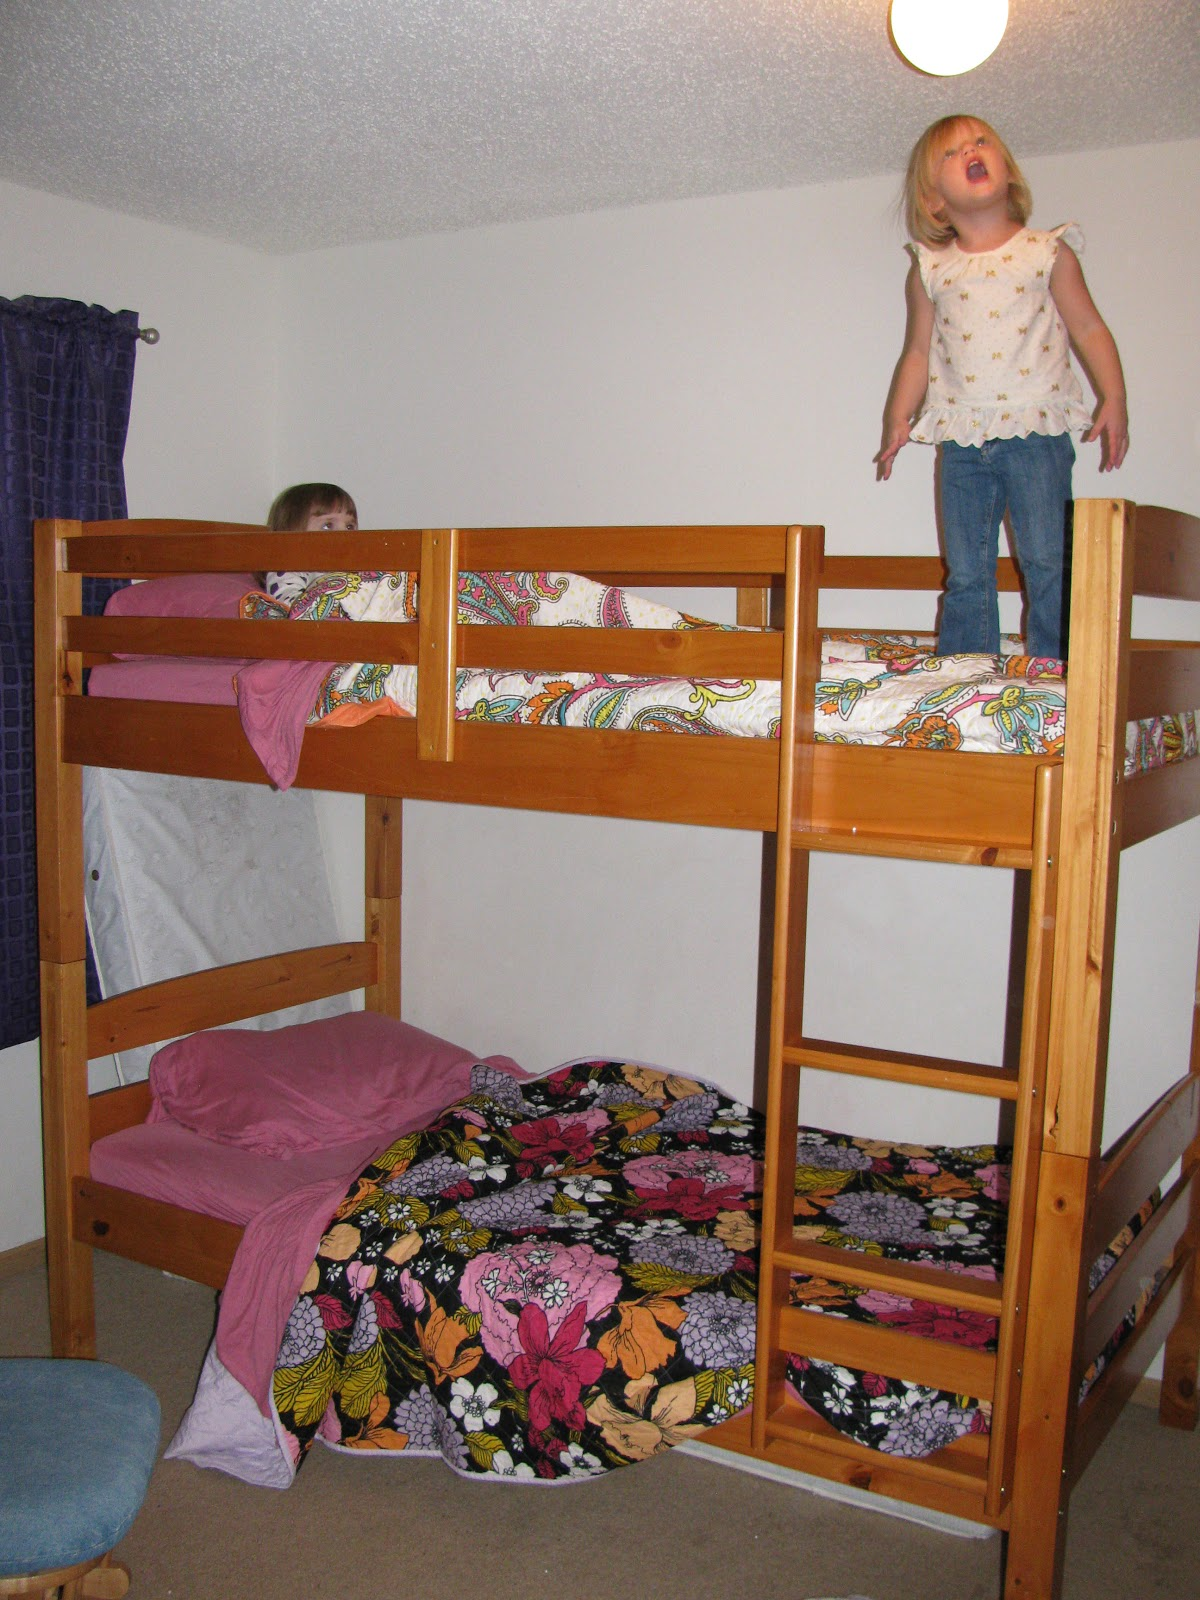 10 tips for selecting the best bunk bed for your kids - bunk bed